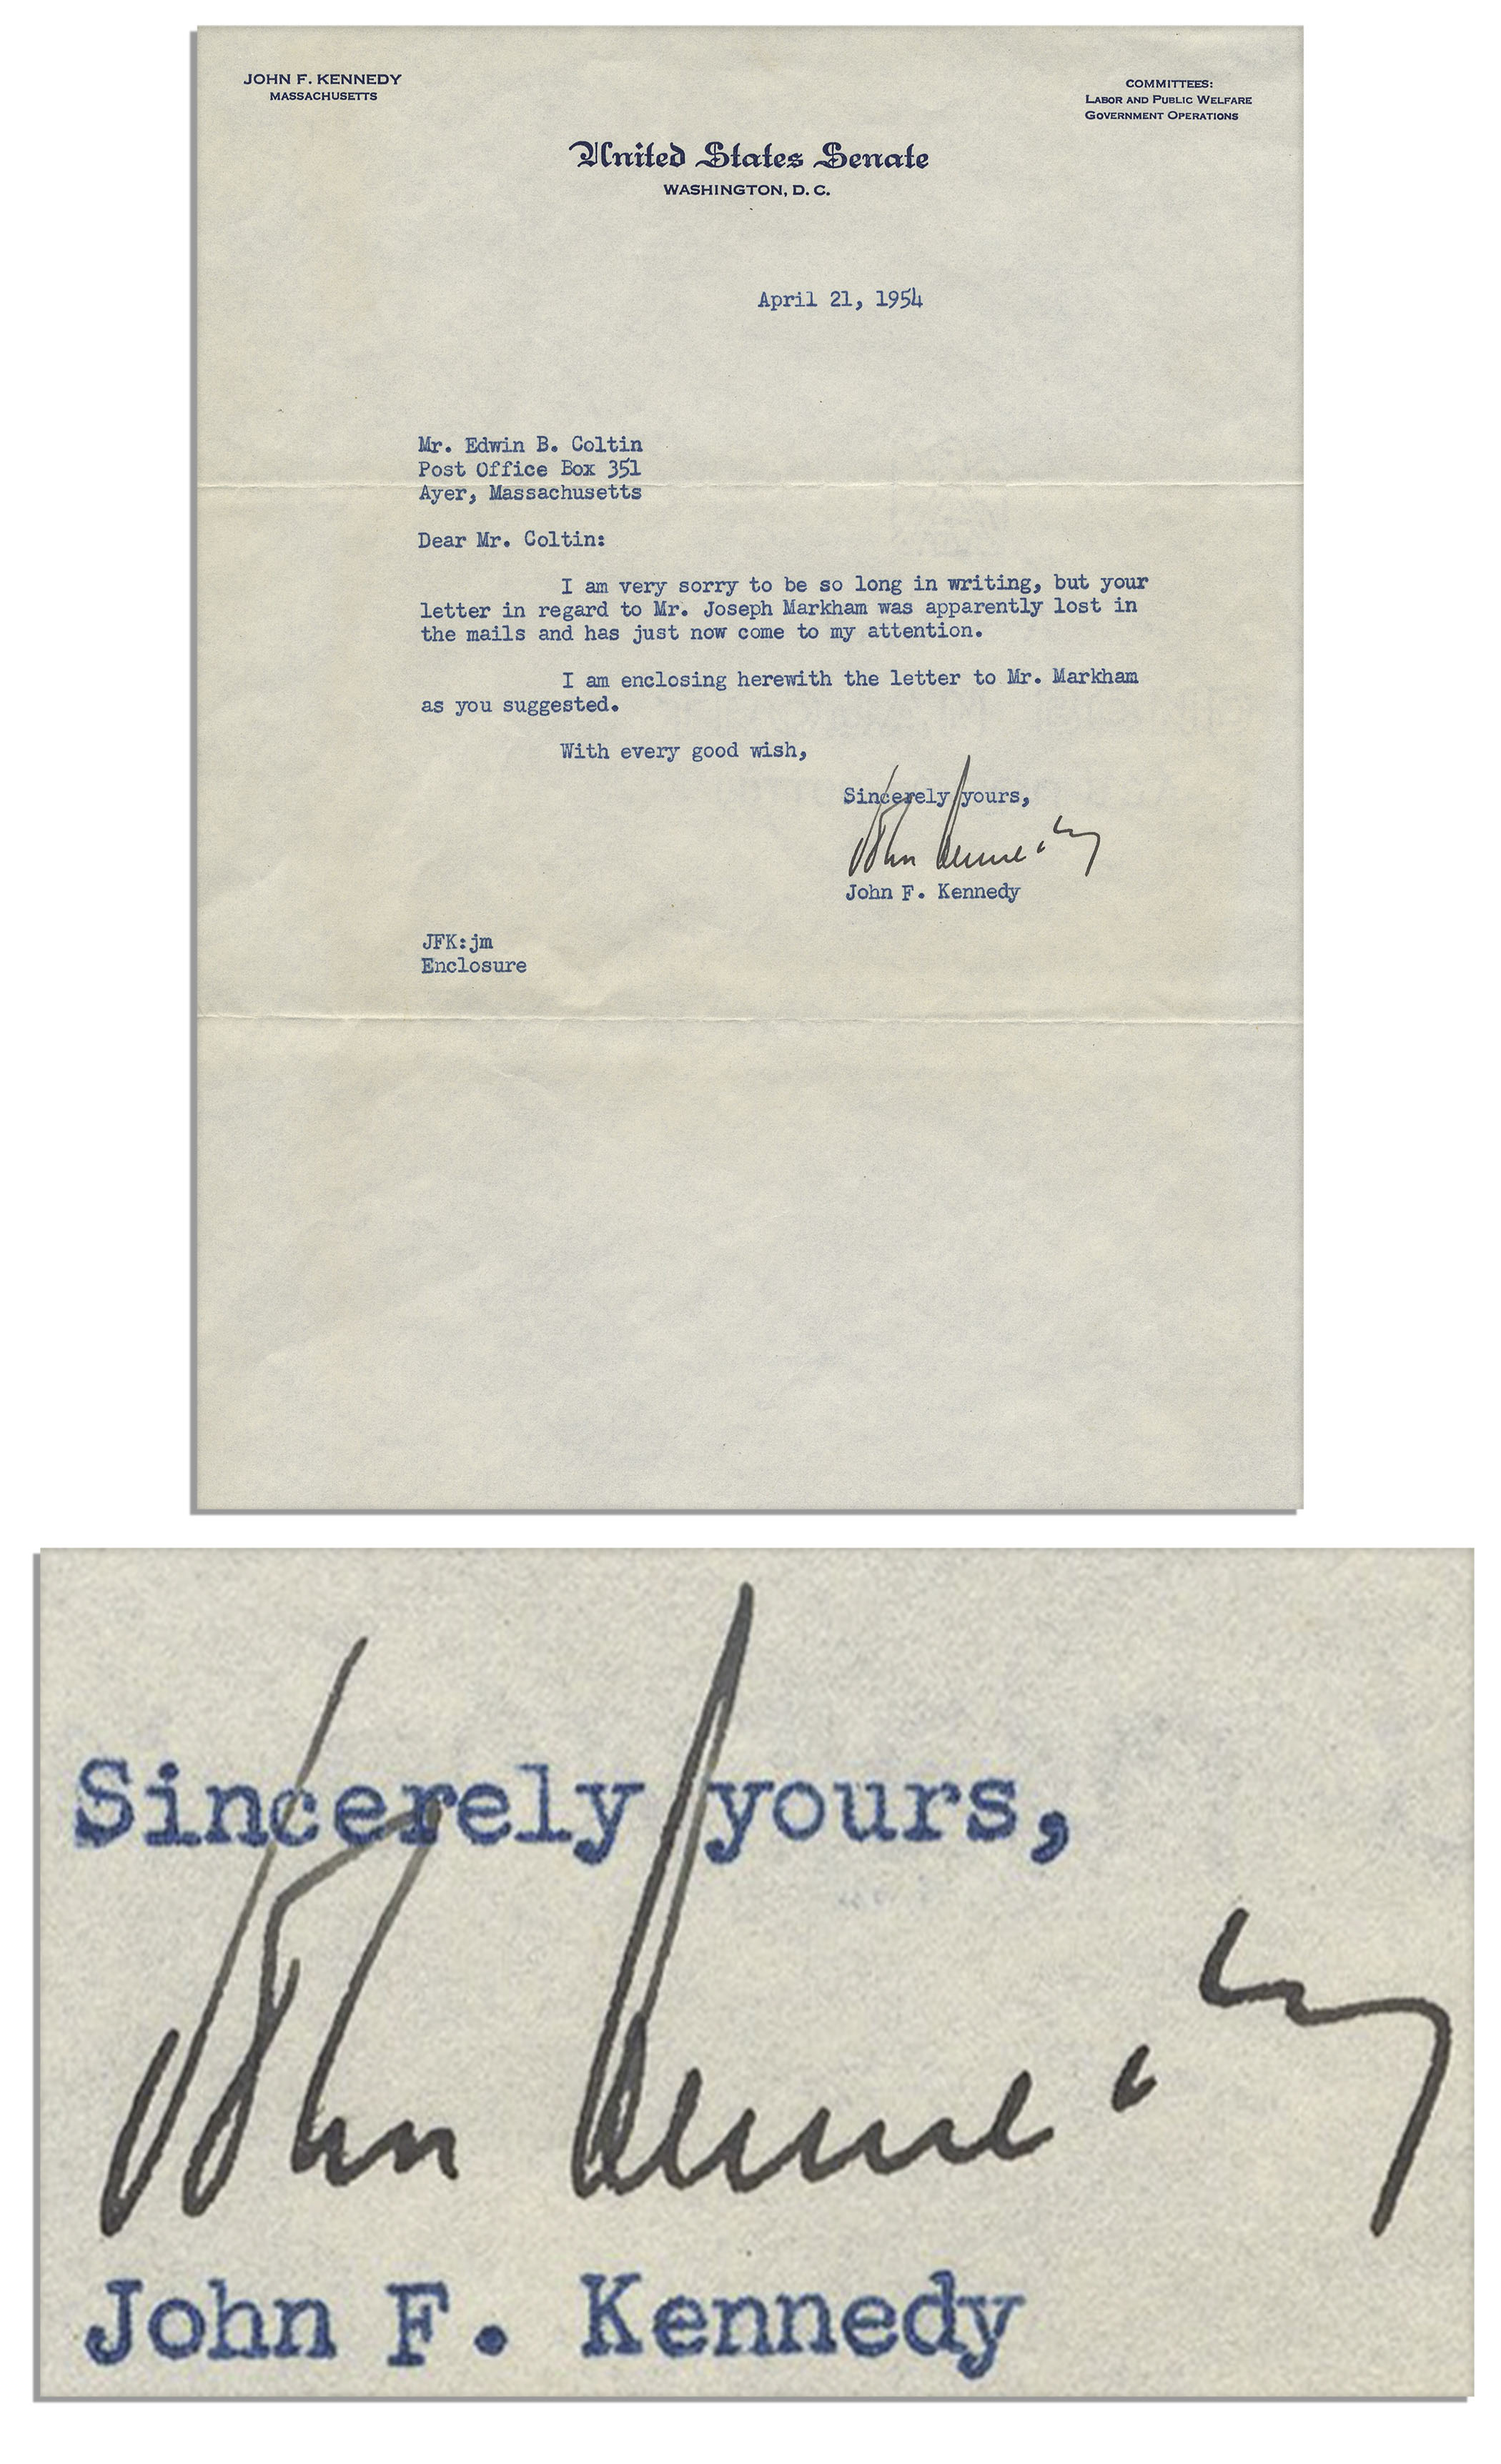 John F Kennedy Autograph John F. Kennedy Typed Letter Signed From 1954 as a Young Congressman -- With PSA/DNA COA